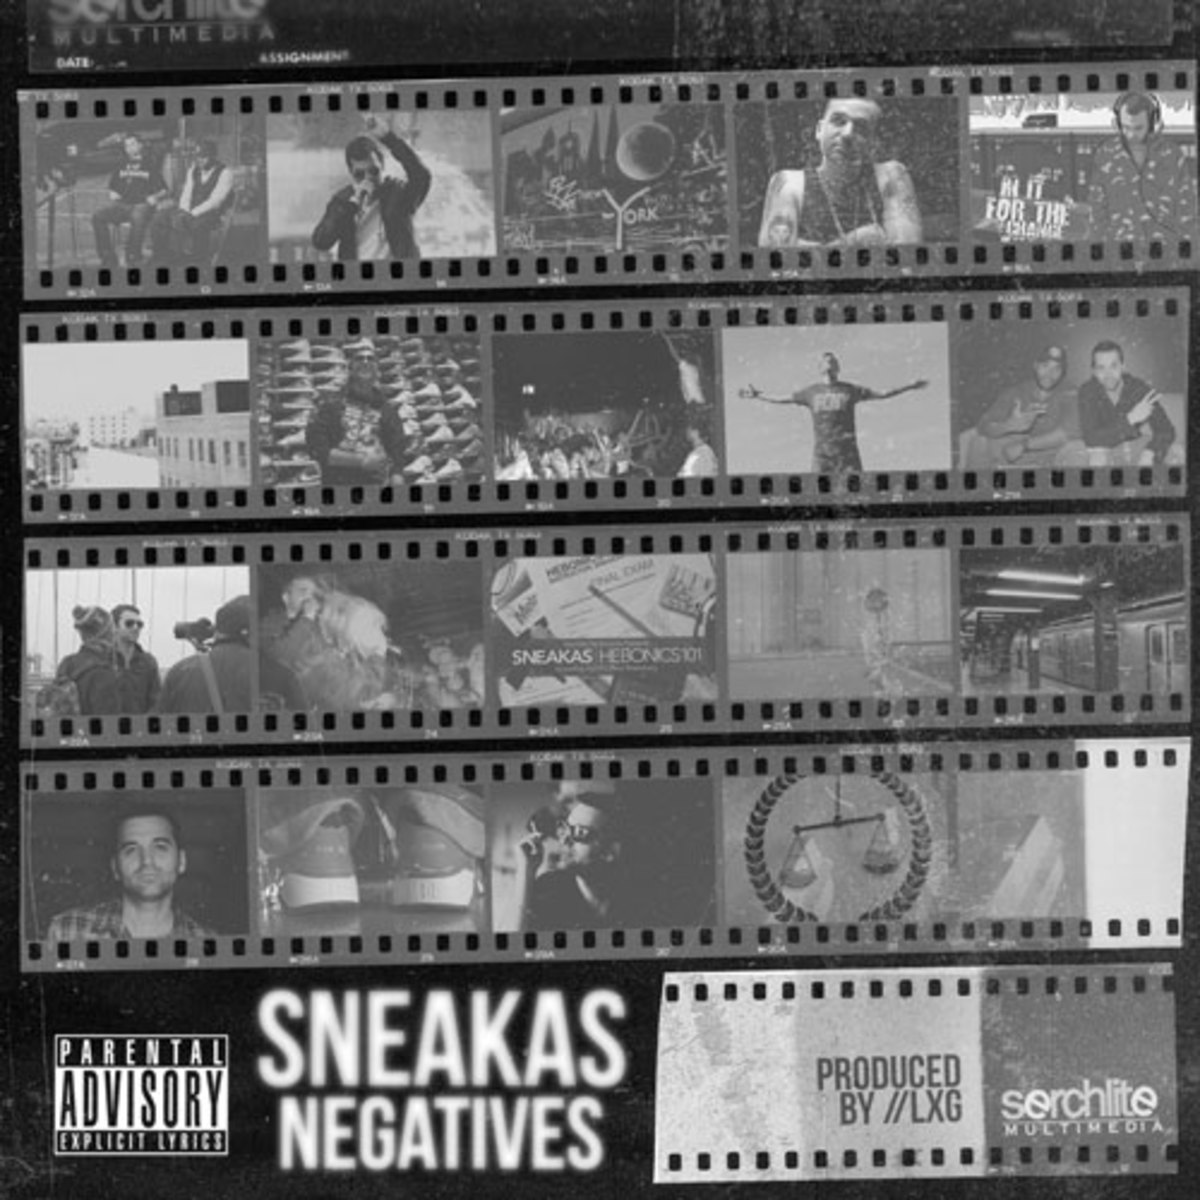 sneakas-negatives.jpg